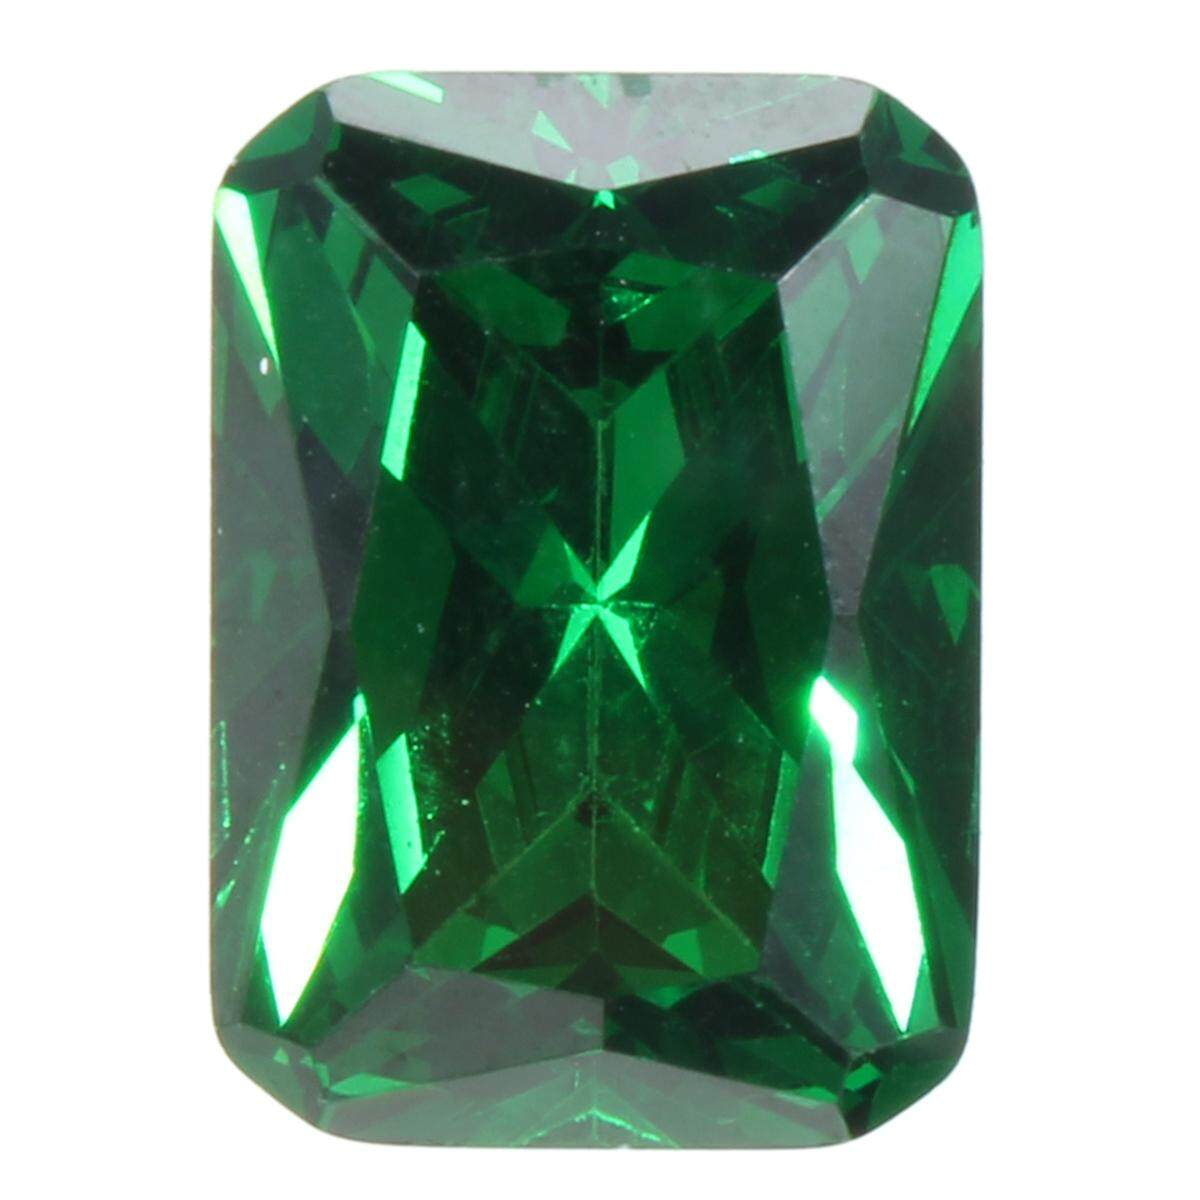 Unheated Dazzling 9.08ct Green Sapphire 10x14mm Diamond Emerald Loose Gemstone By Freebang.